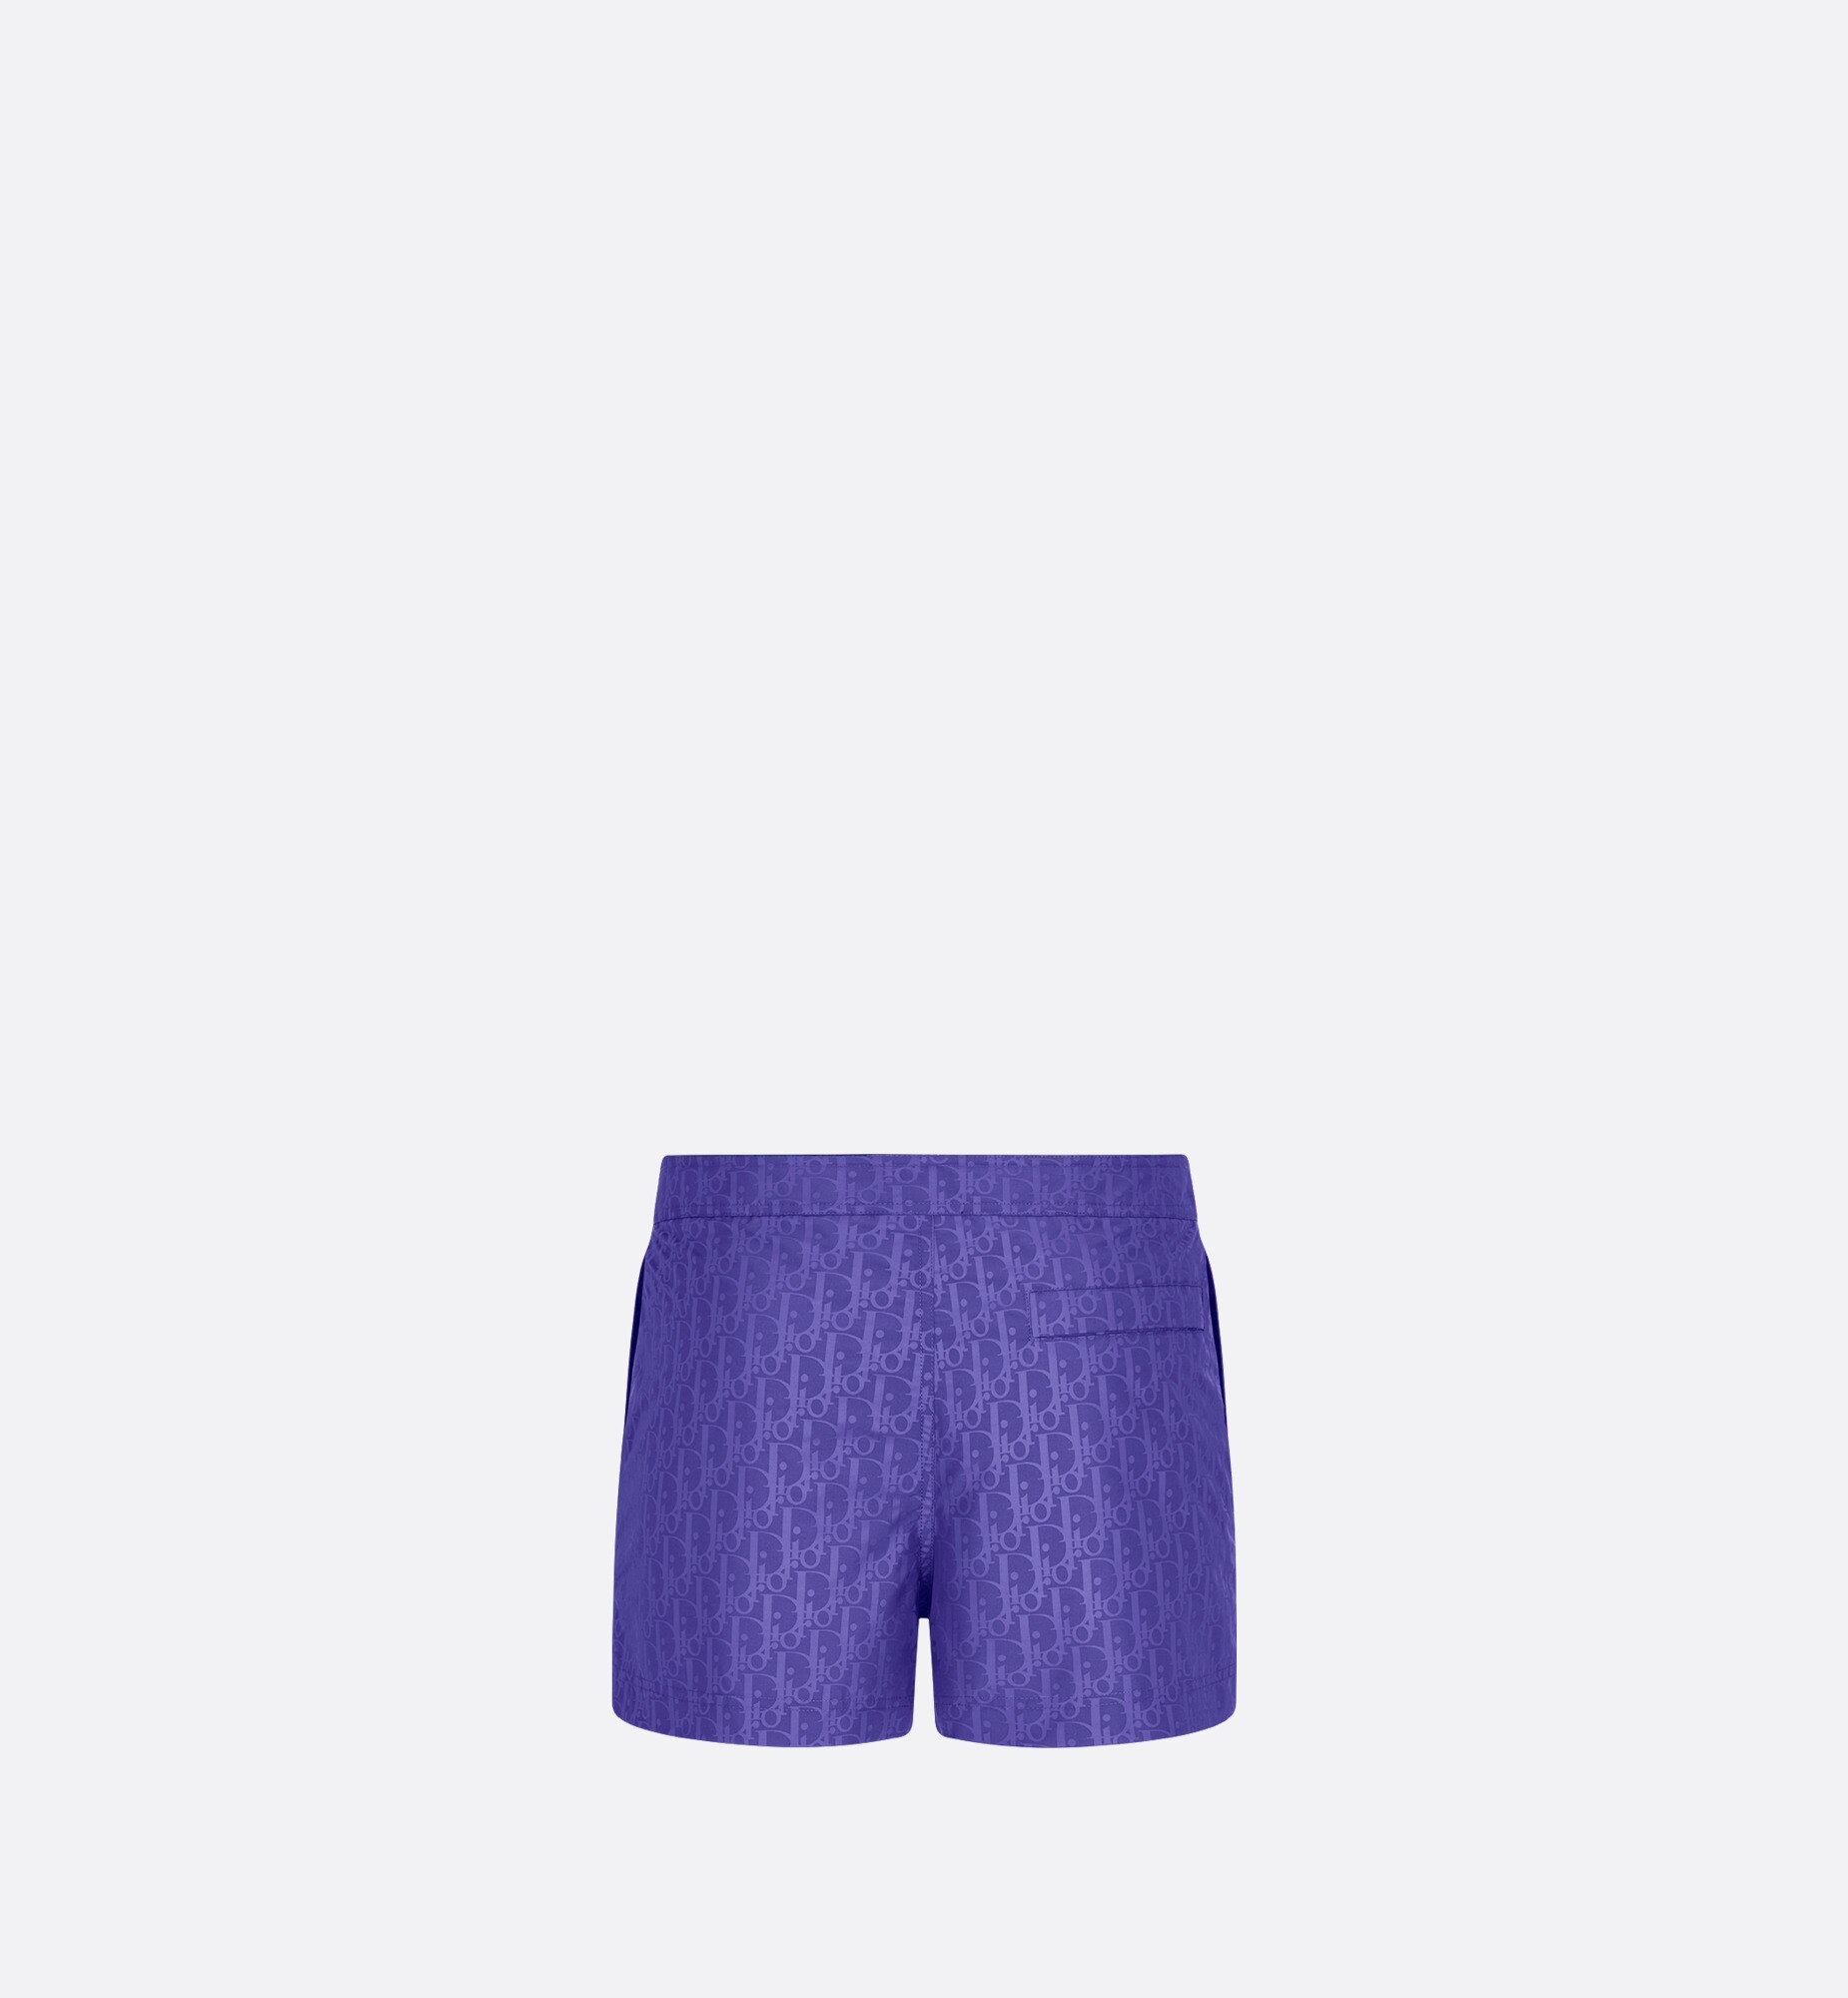 Dior Oblique Short Swim Shorts Back view Open gallery